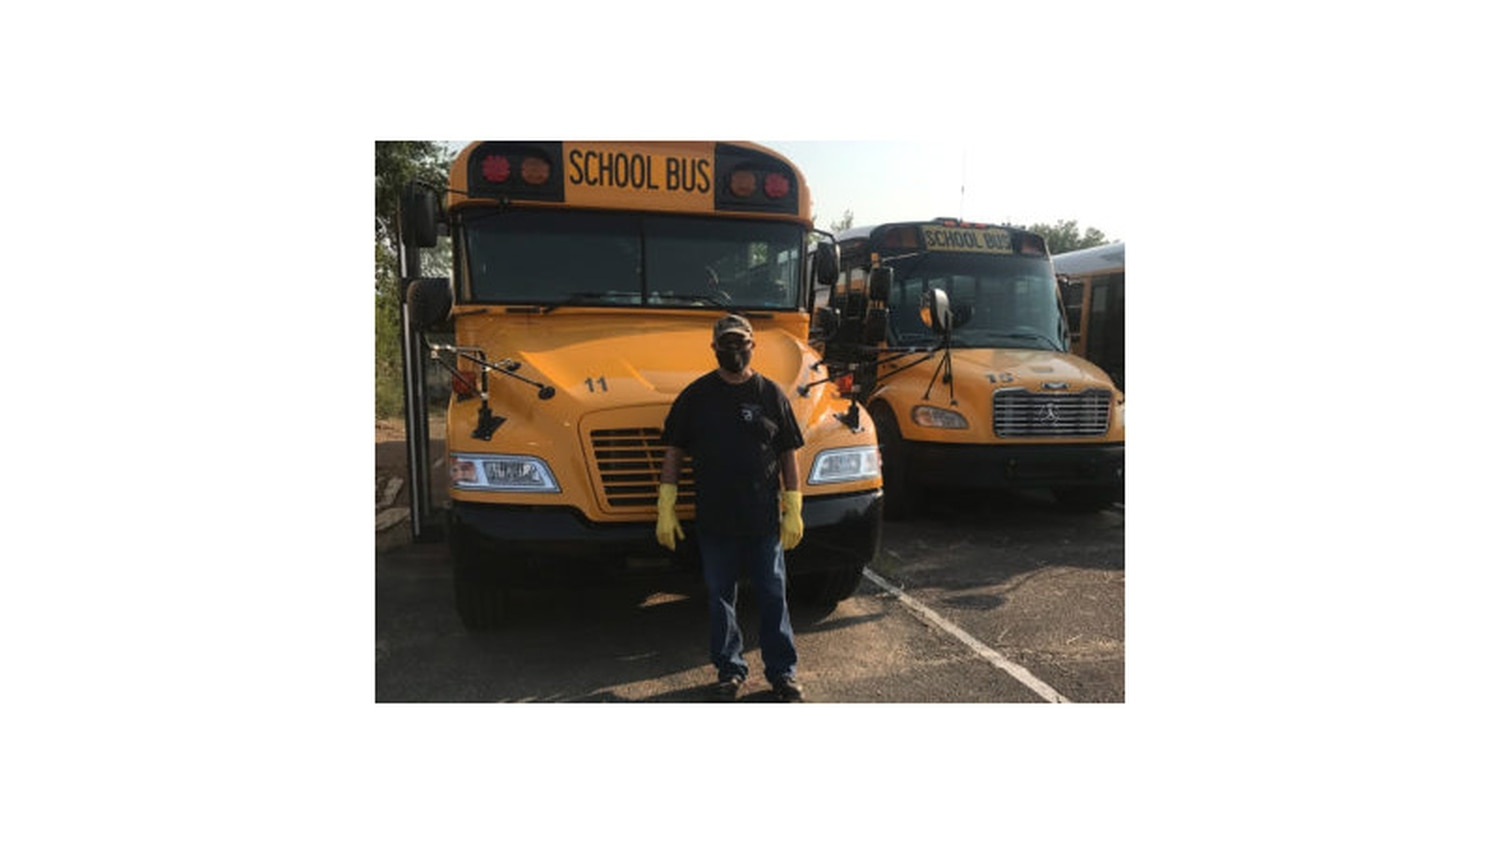 Larry Sebada is one of the 11 drivers delivering food and classroom materials to students.